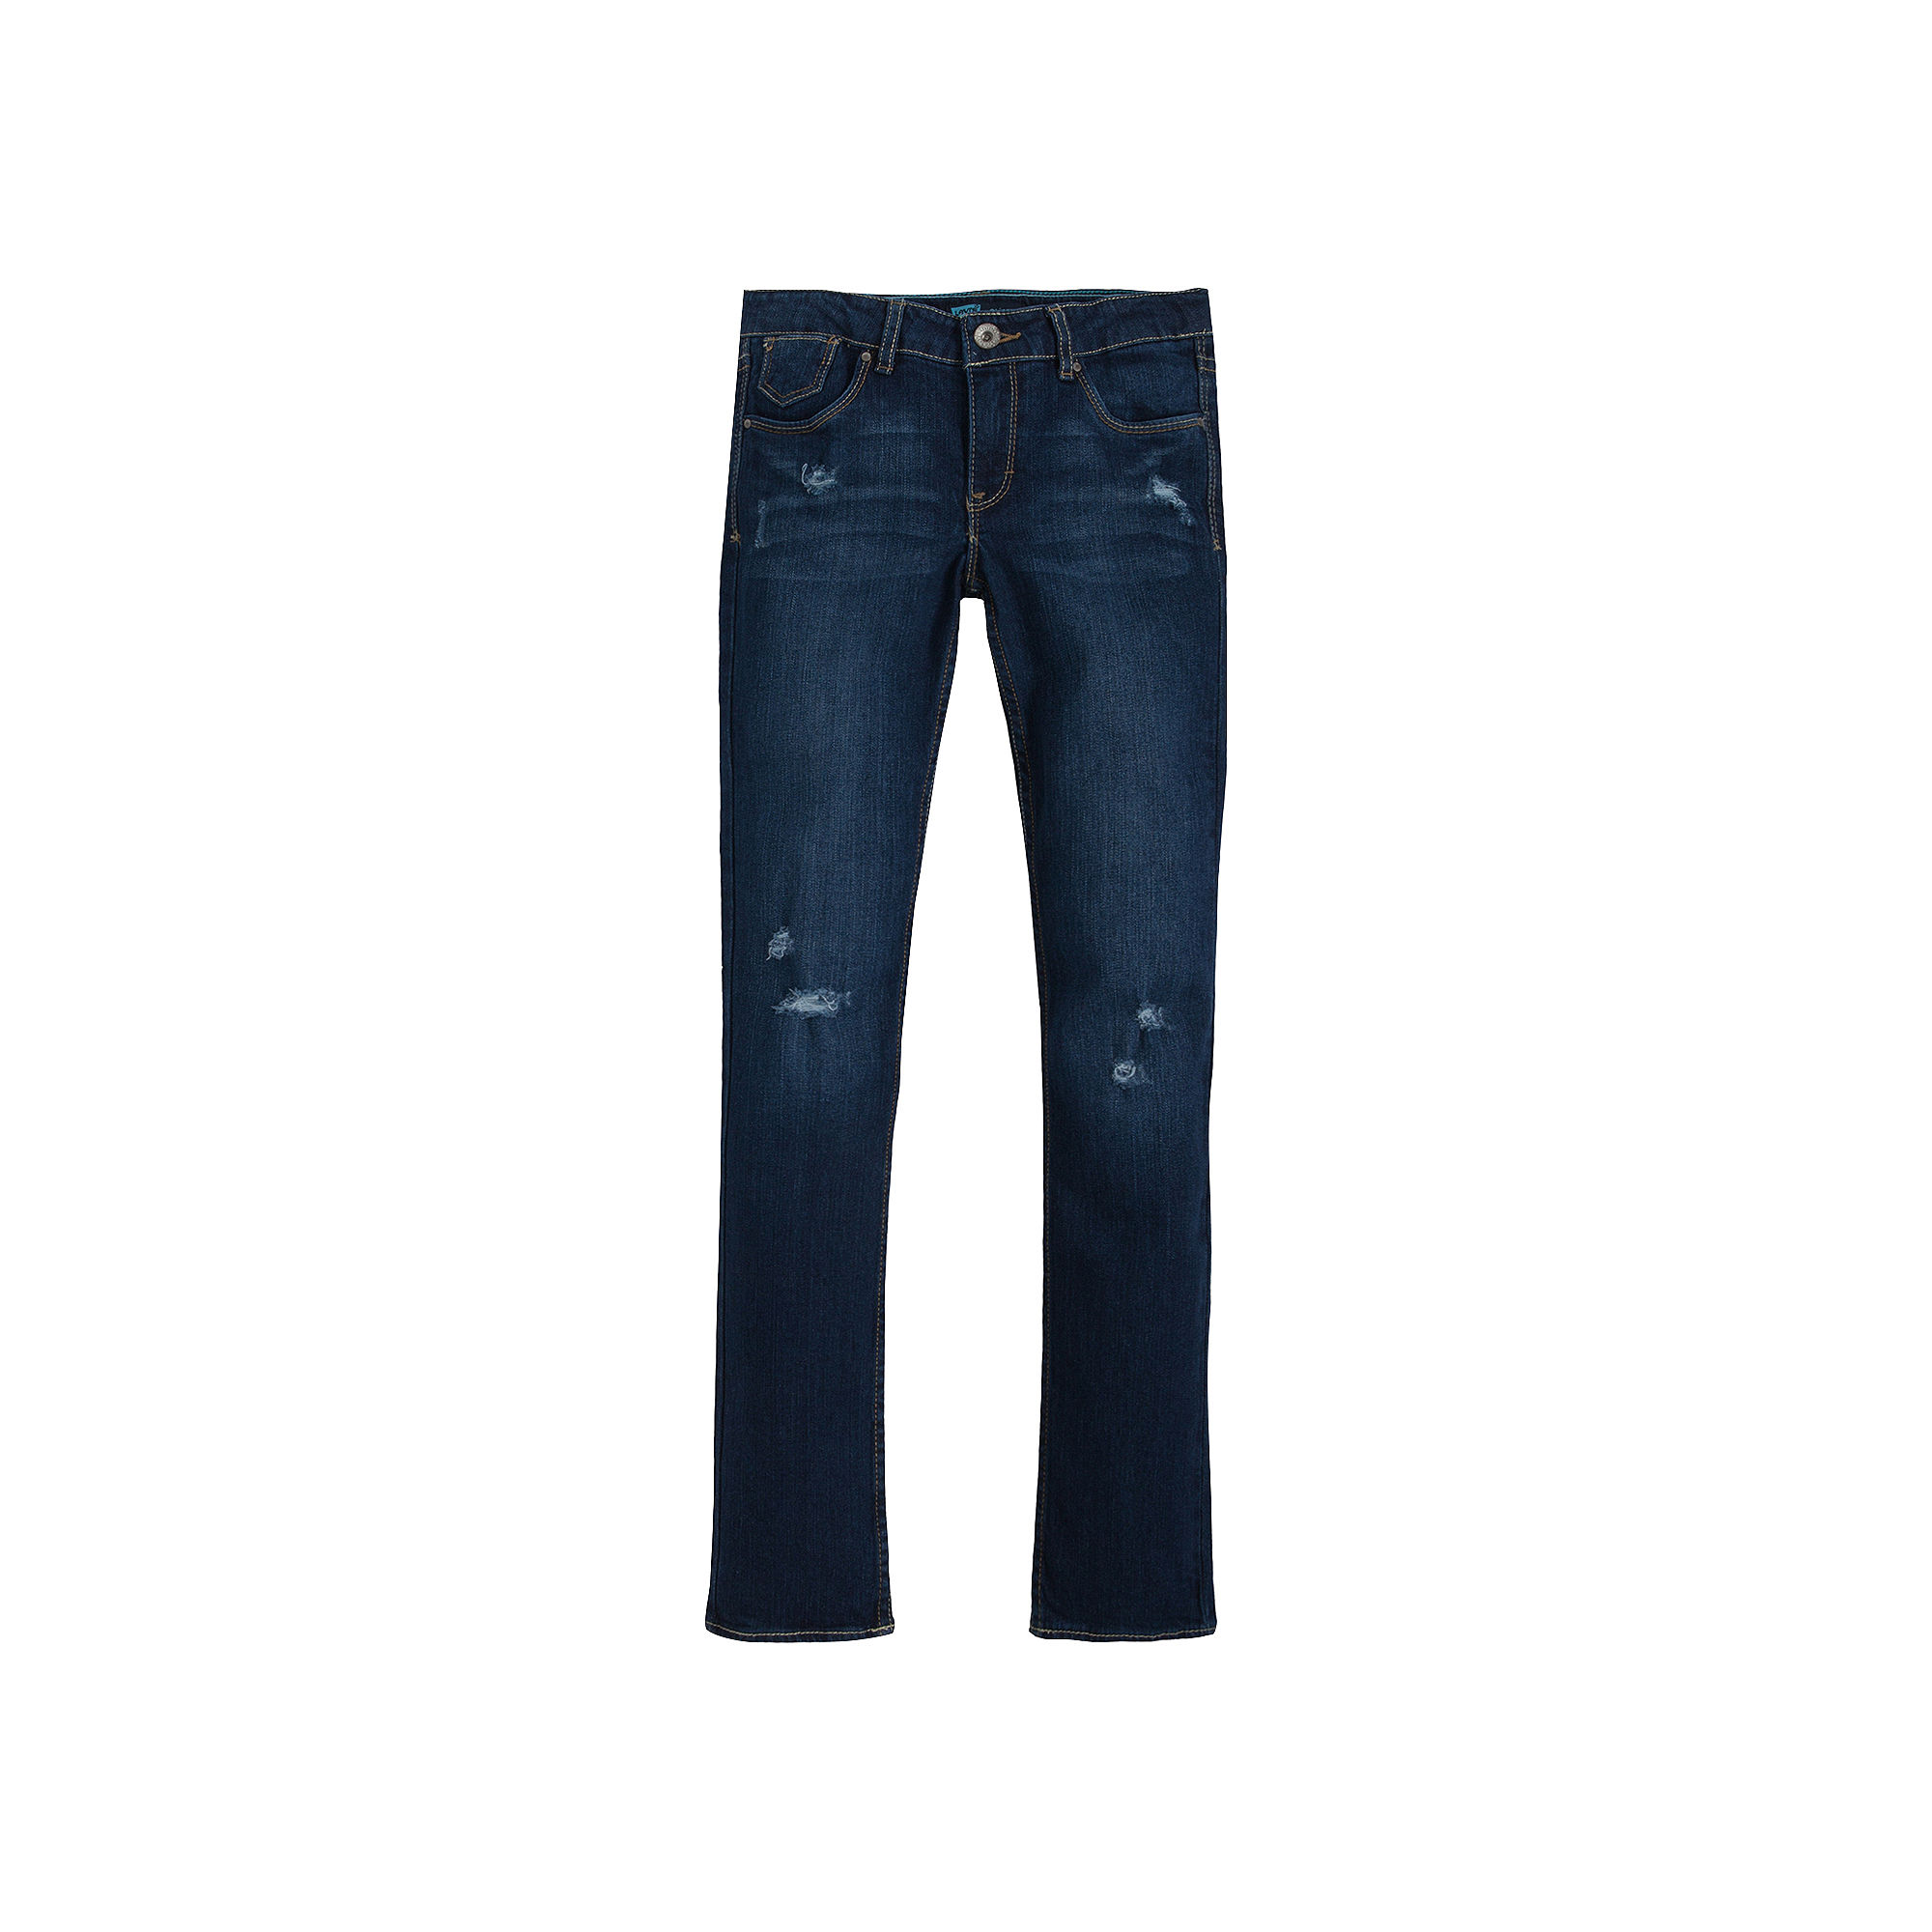 Levi's Distressed Skinny Jeans - Girls 7-16